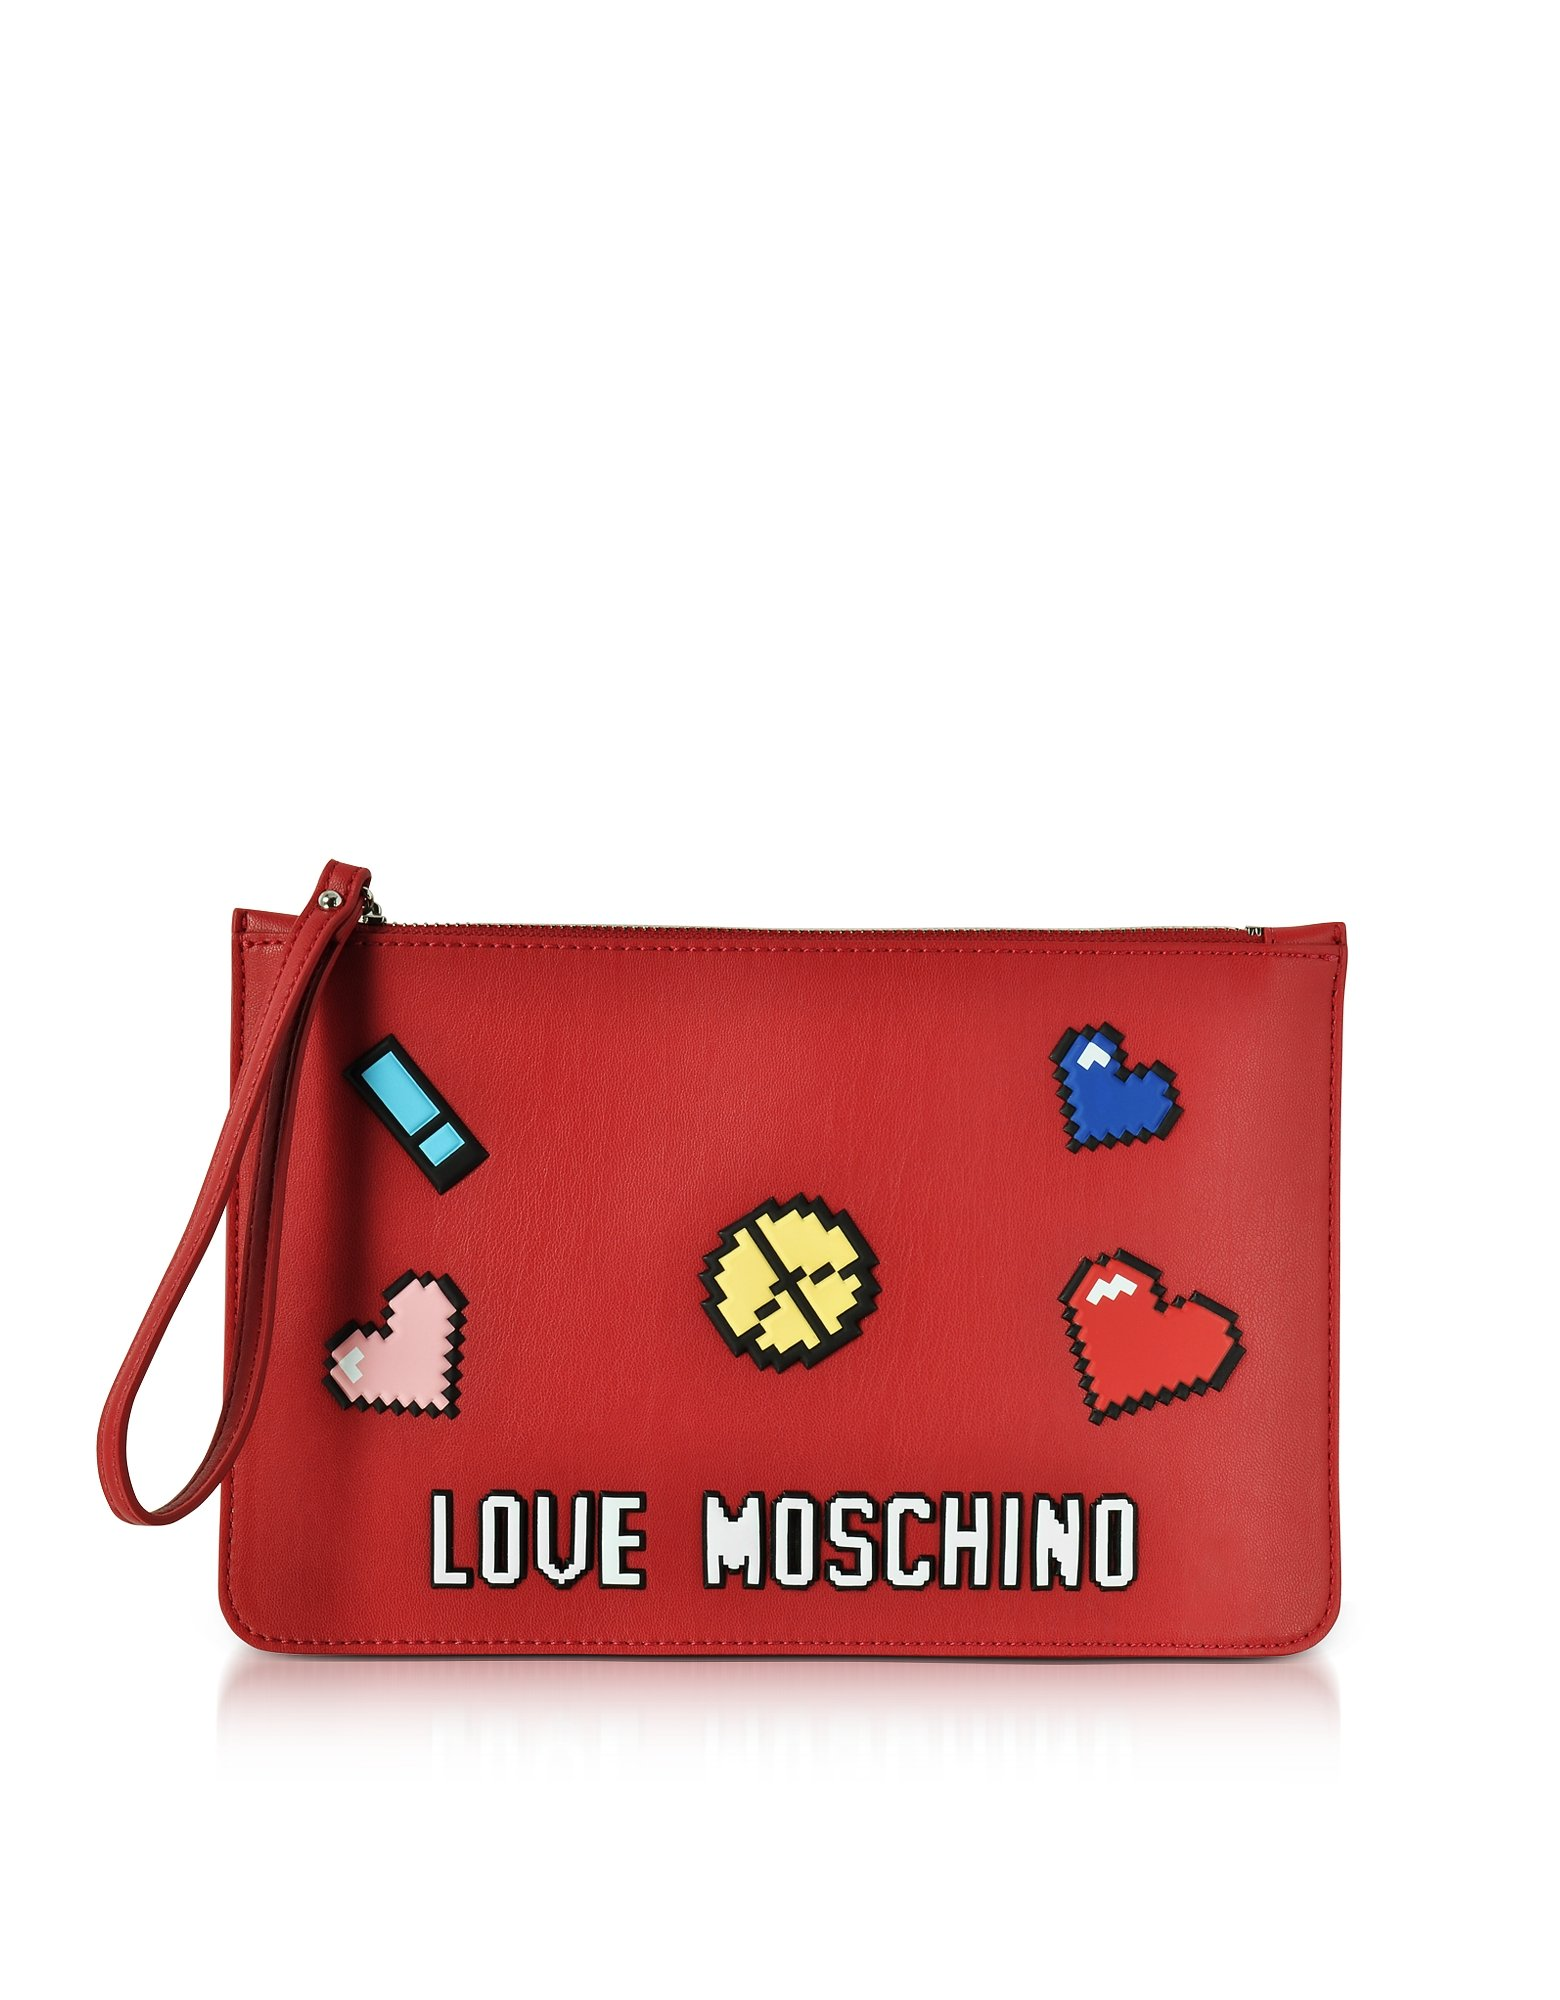 Love Moschino Women's Jc4071pp15lh0500 Red Leather Shoulder Bag